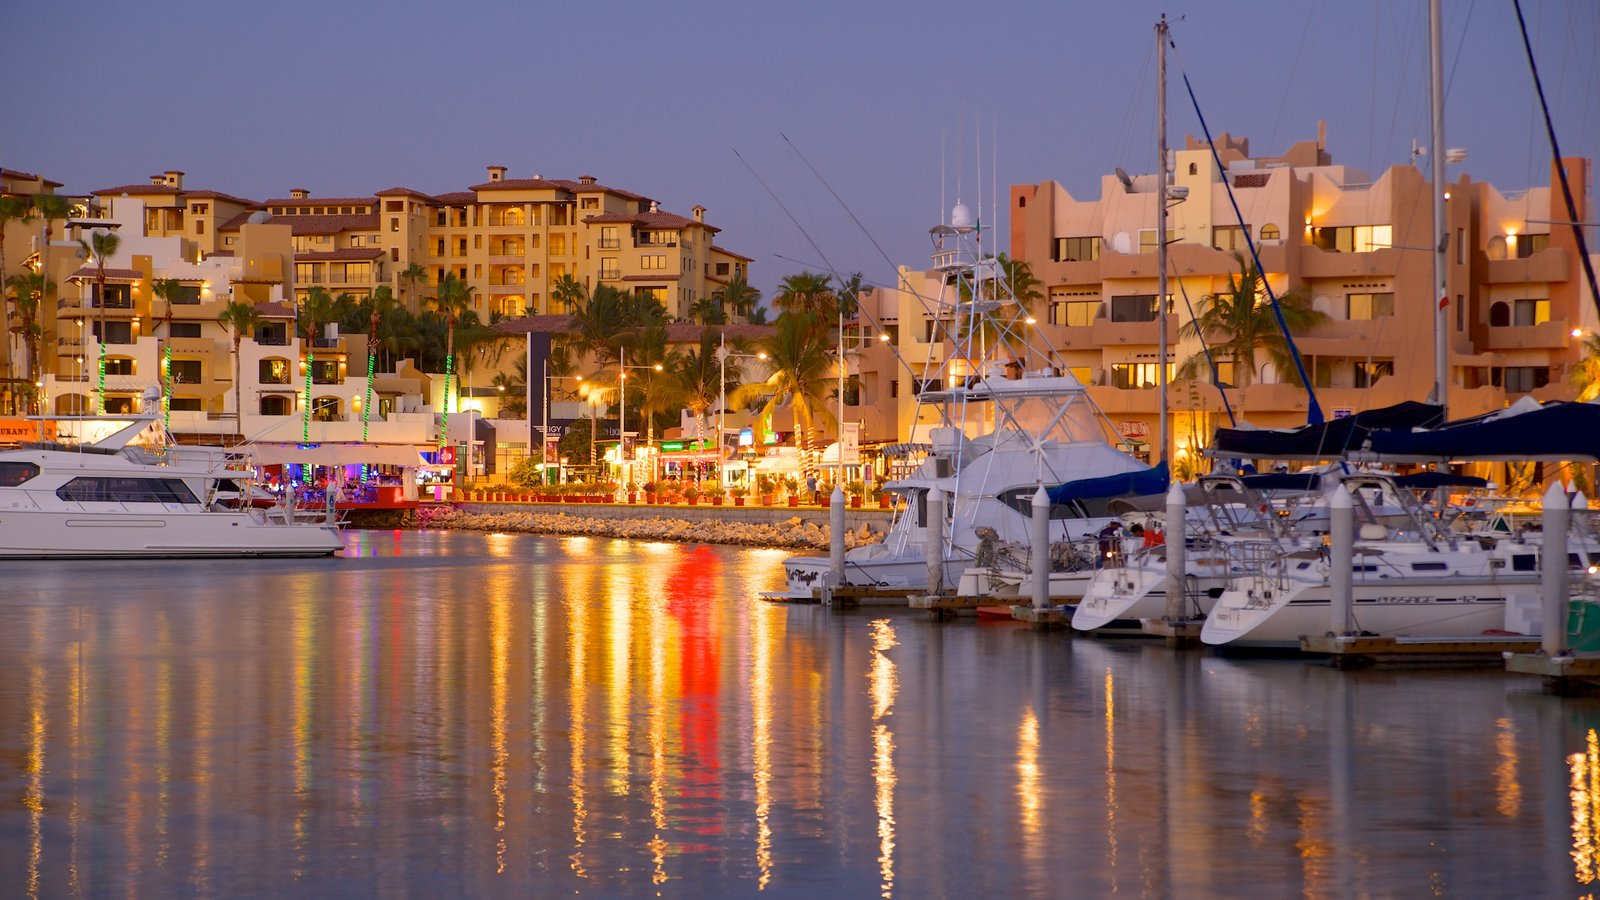 Marina Cabo San Lucas showing night scenes, a coastal town and a marina